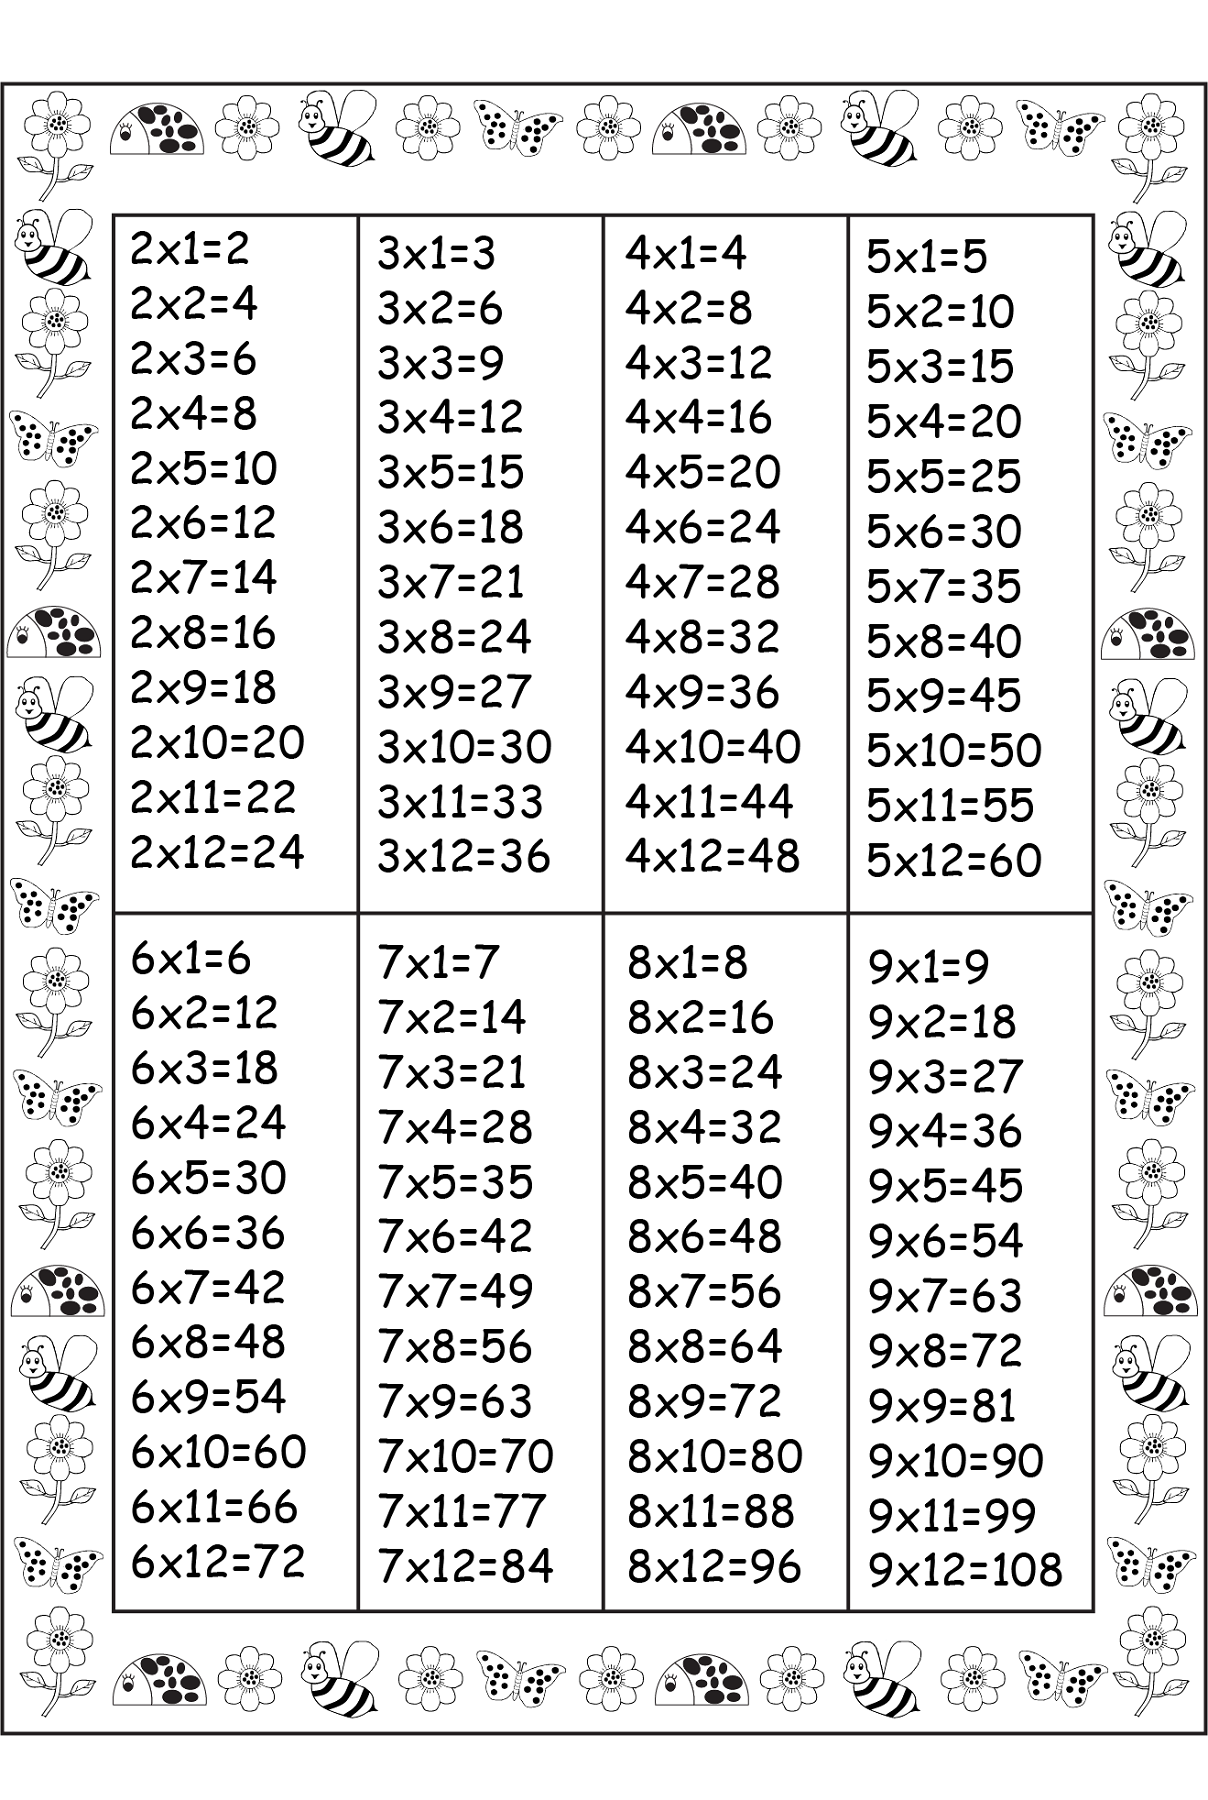 Times table shets printable activity shelter also sheets mutiplication charts rh pinterest